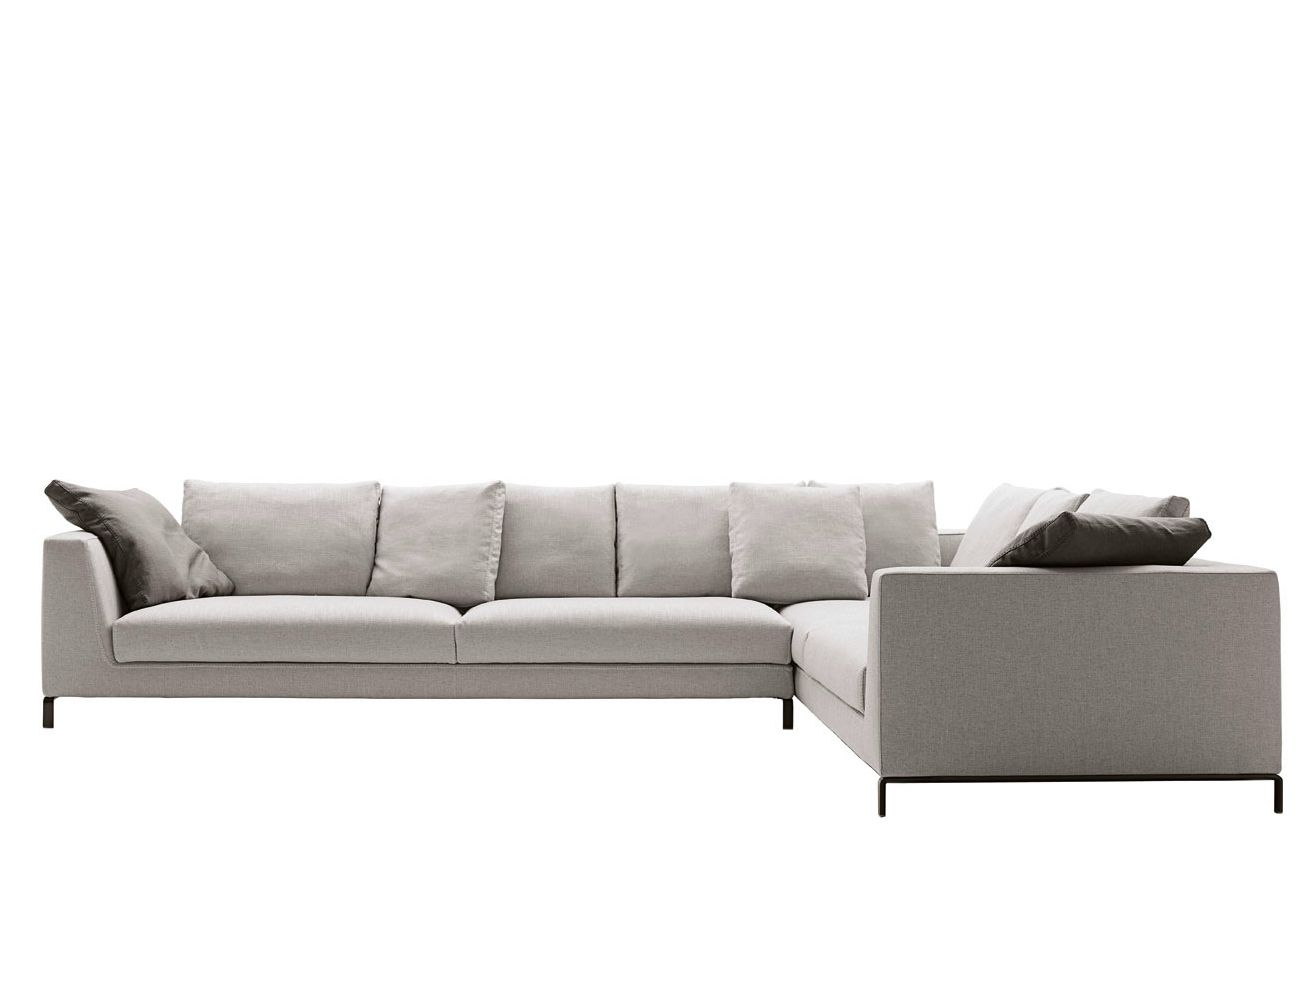 Ray sectional sofa by b sectional sofa leather for B b sofa